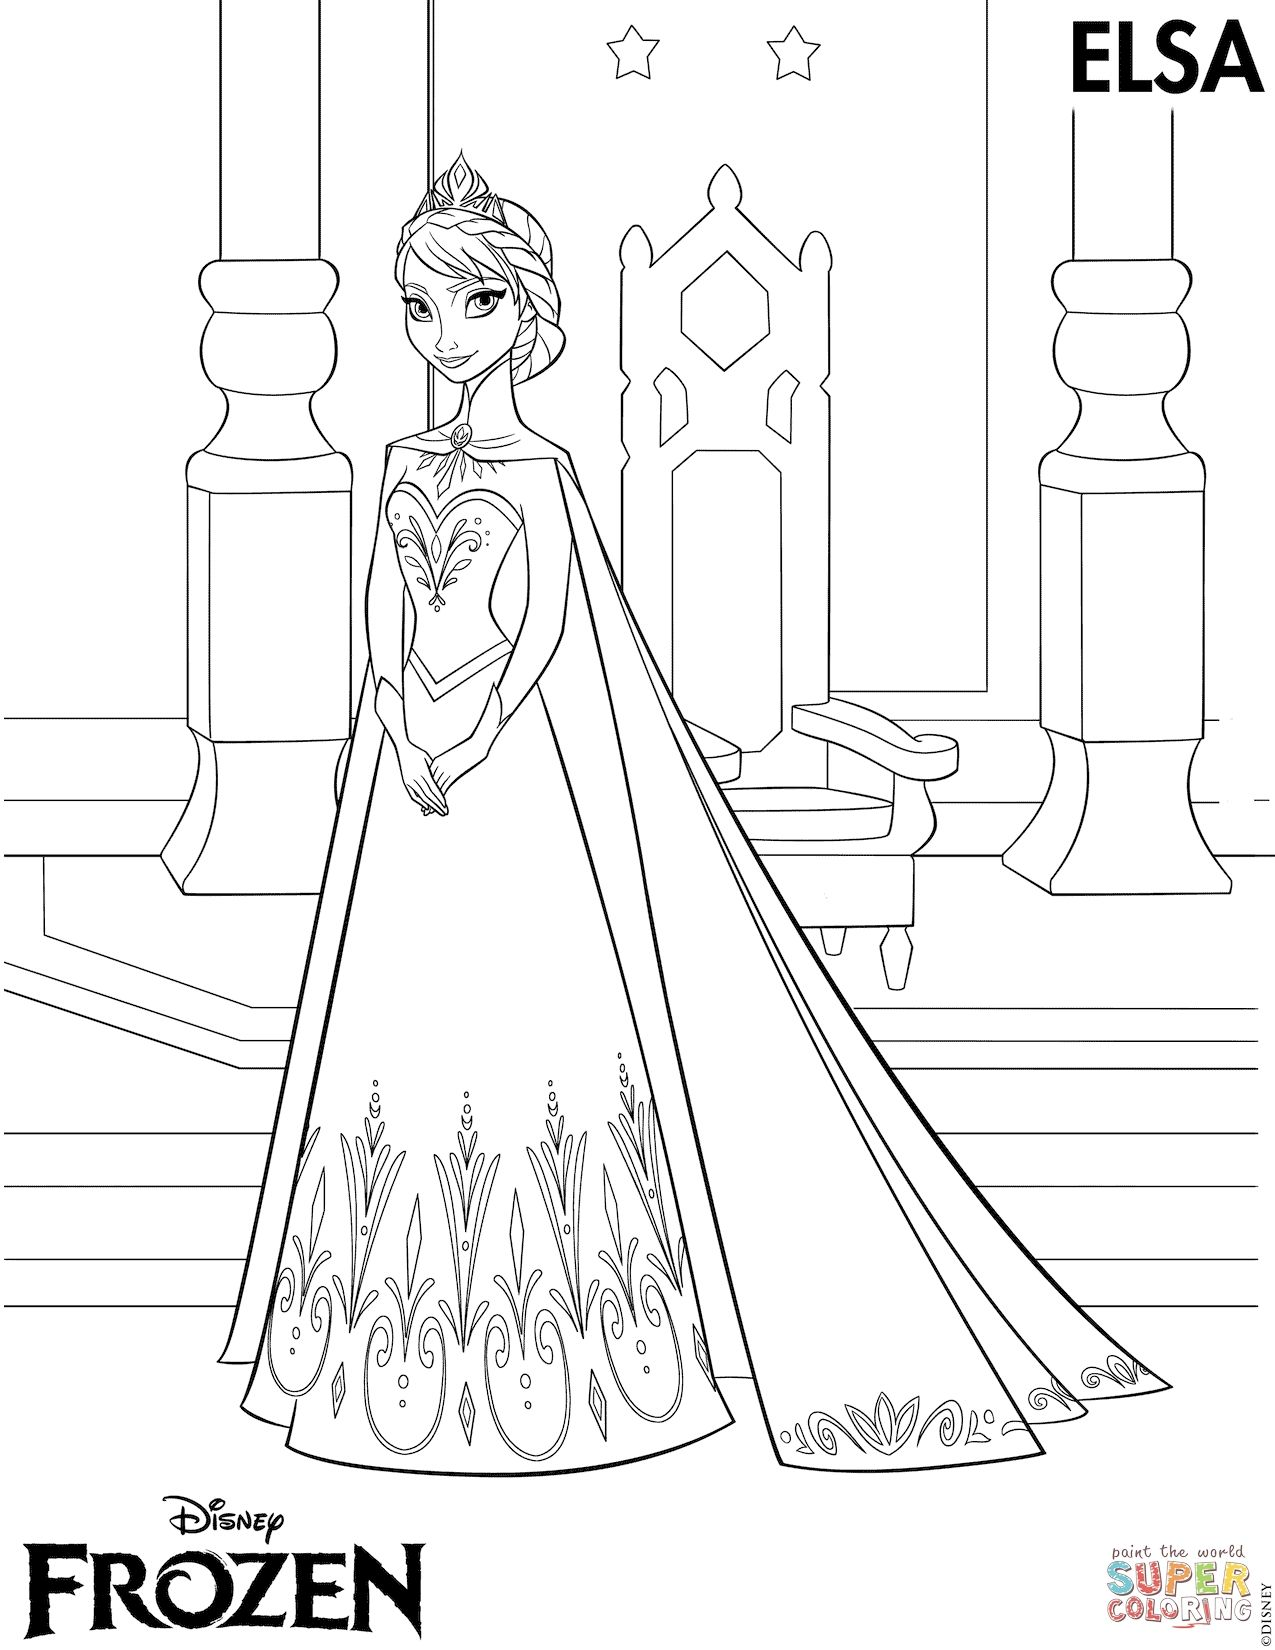 Elsa Coronation Coloring Pages Elsa Coronation Coloring Pages Frozen Coloring Pages Elsa Coronation Elsa Coloring Pages Elsa Coloring Frozen Coloring Pages